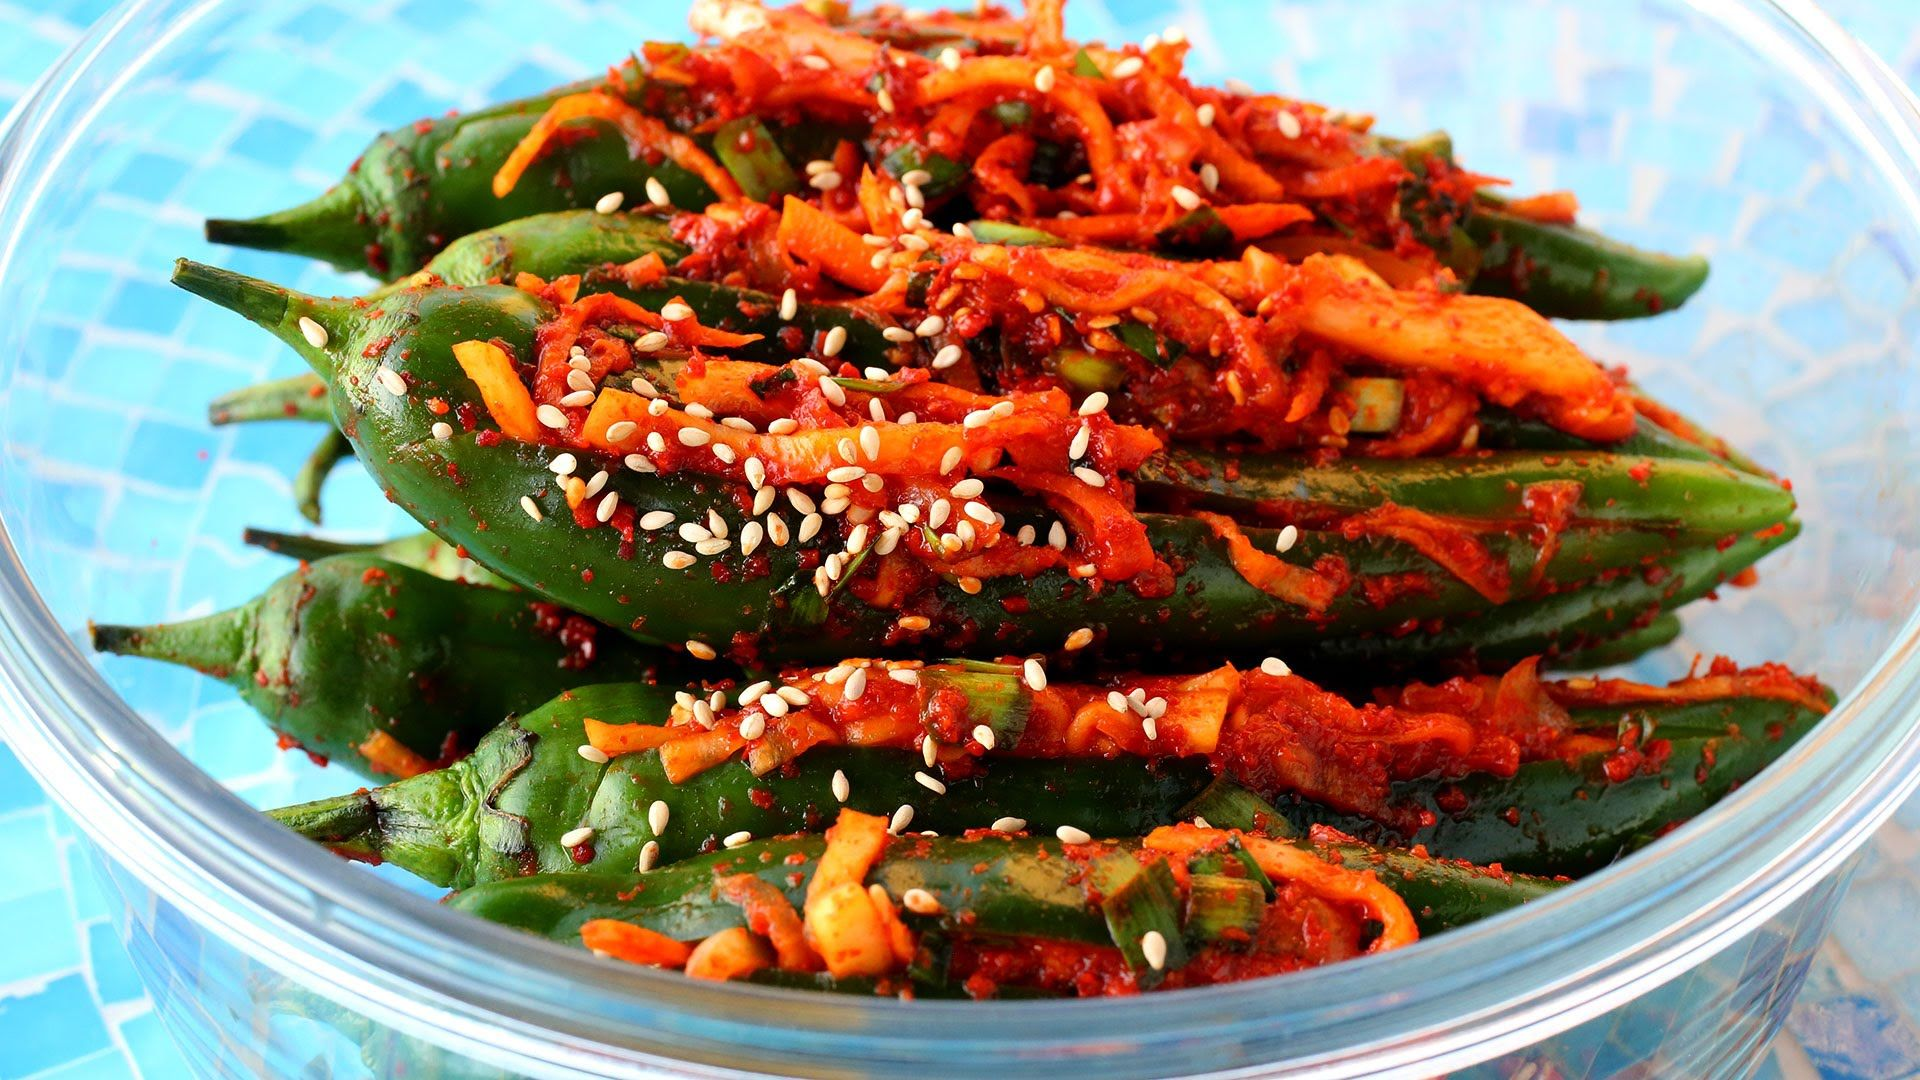 Spicy stuffed green chili pepper kimchi gochu sobagi dishes forumfinder Choice Image